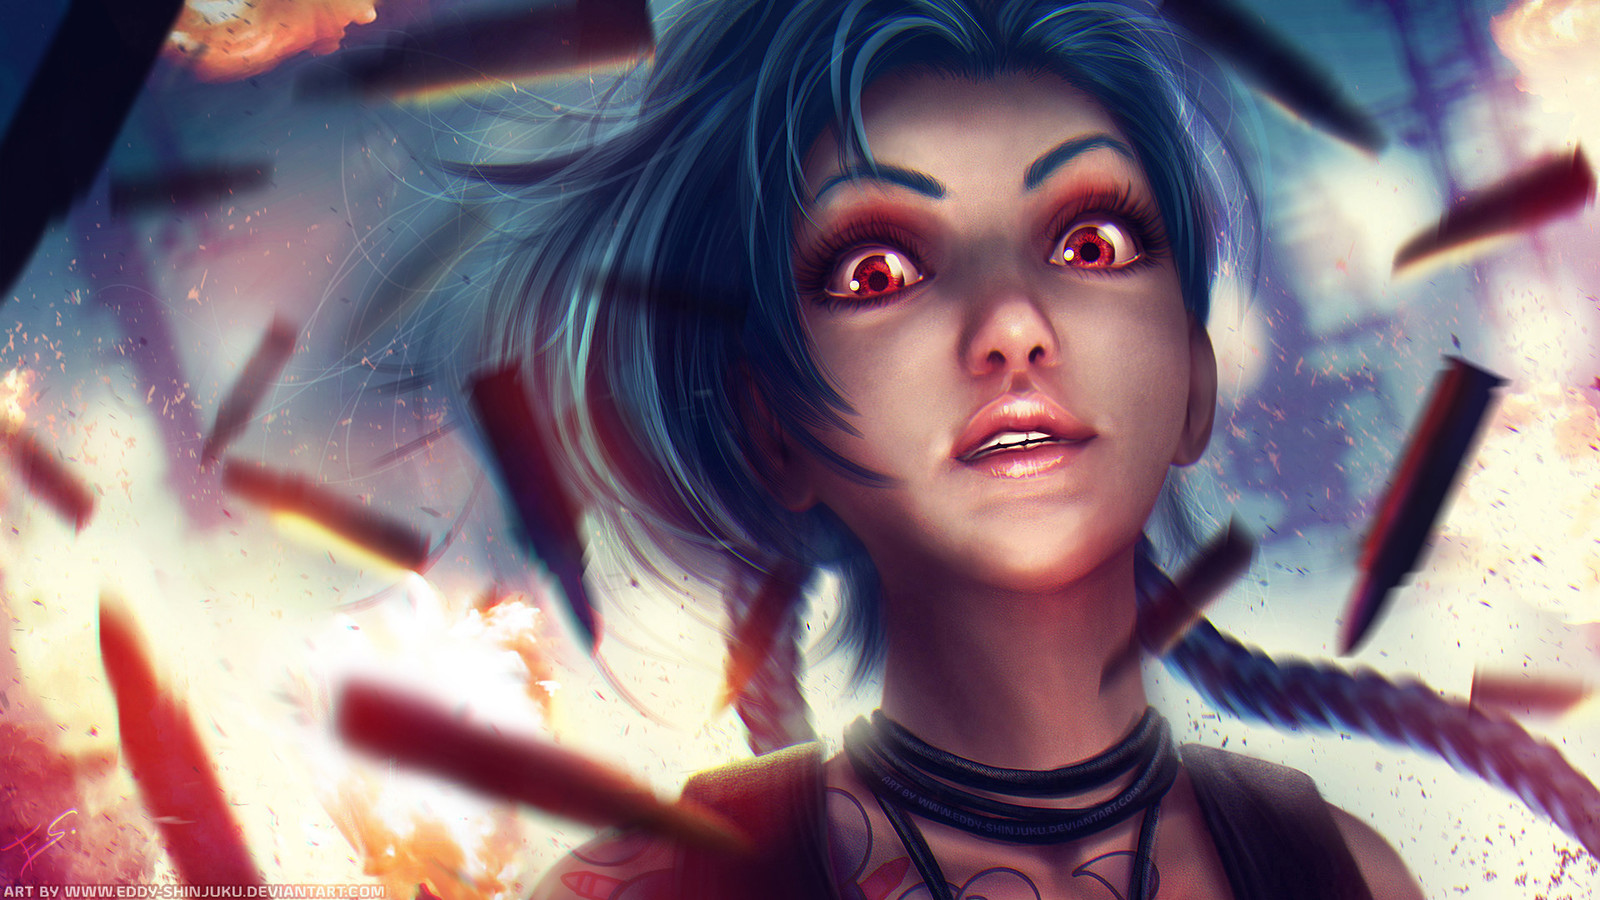 Jinx 'Bang Bang Galore' - League of Legends